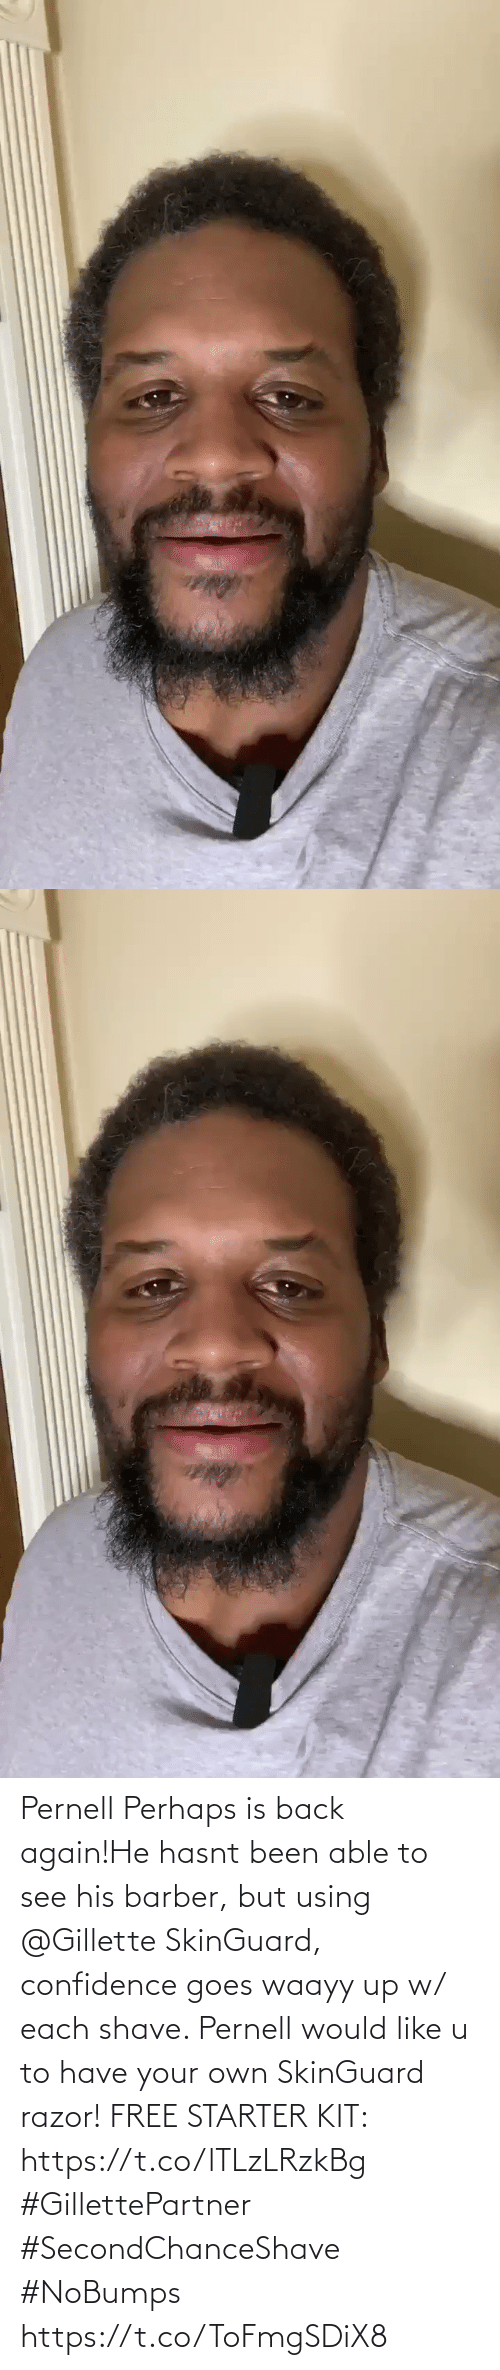 Been: Pernell Perhaps is back again!He hasnt been able to see his barber, but using @Gillette SkinGuard, confidence goes waayy up w/ each shave. Pernell would like u to have your own SkinGuard razor! FREE STARTER KIT: https://t.co/lTLzLRzkBg #GillettePartner #SecondChanceShave #NoBumps https://t.co/ToFmgSDiX8